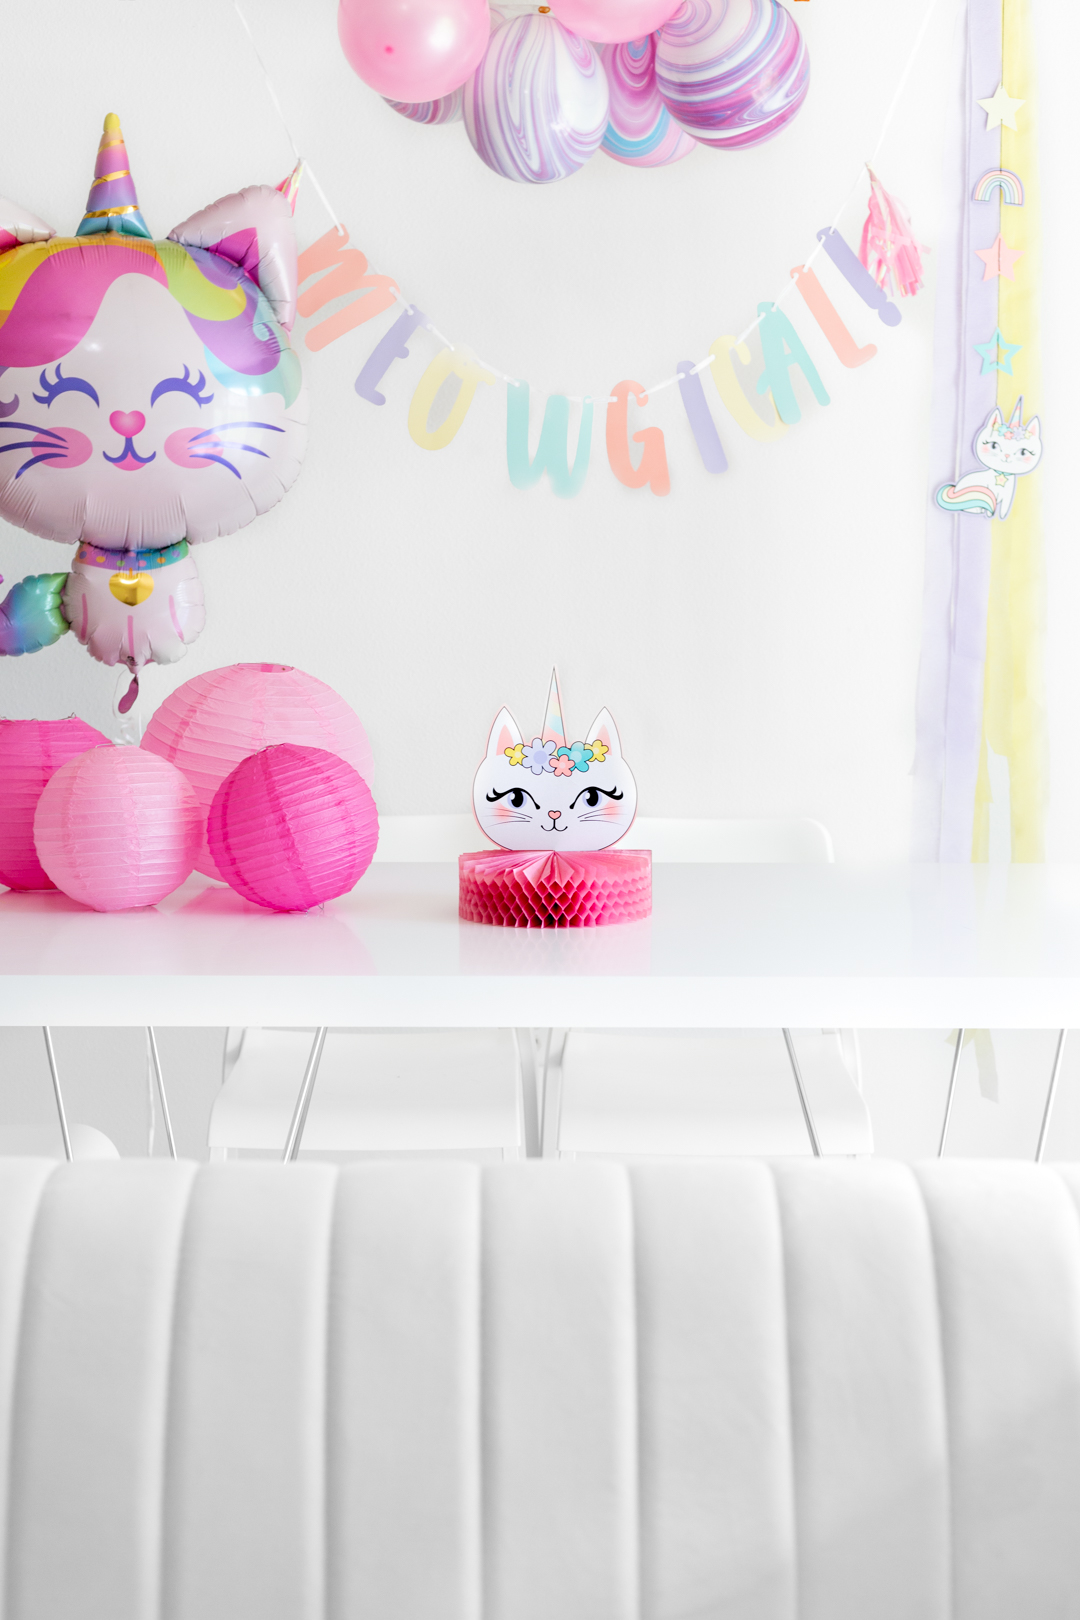 caticorn party table with balloons, tablescape and caticorn meow-gical banner